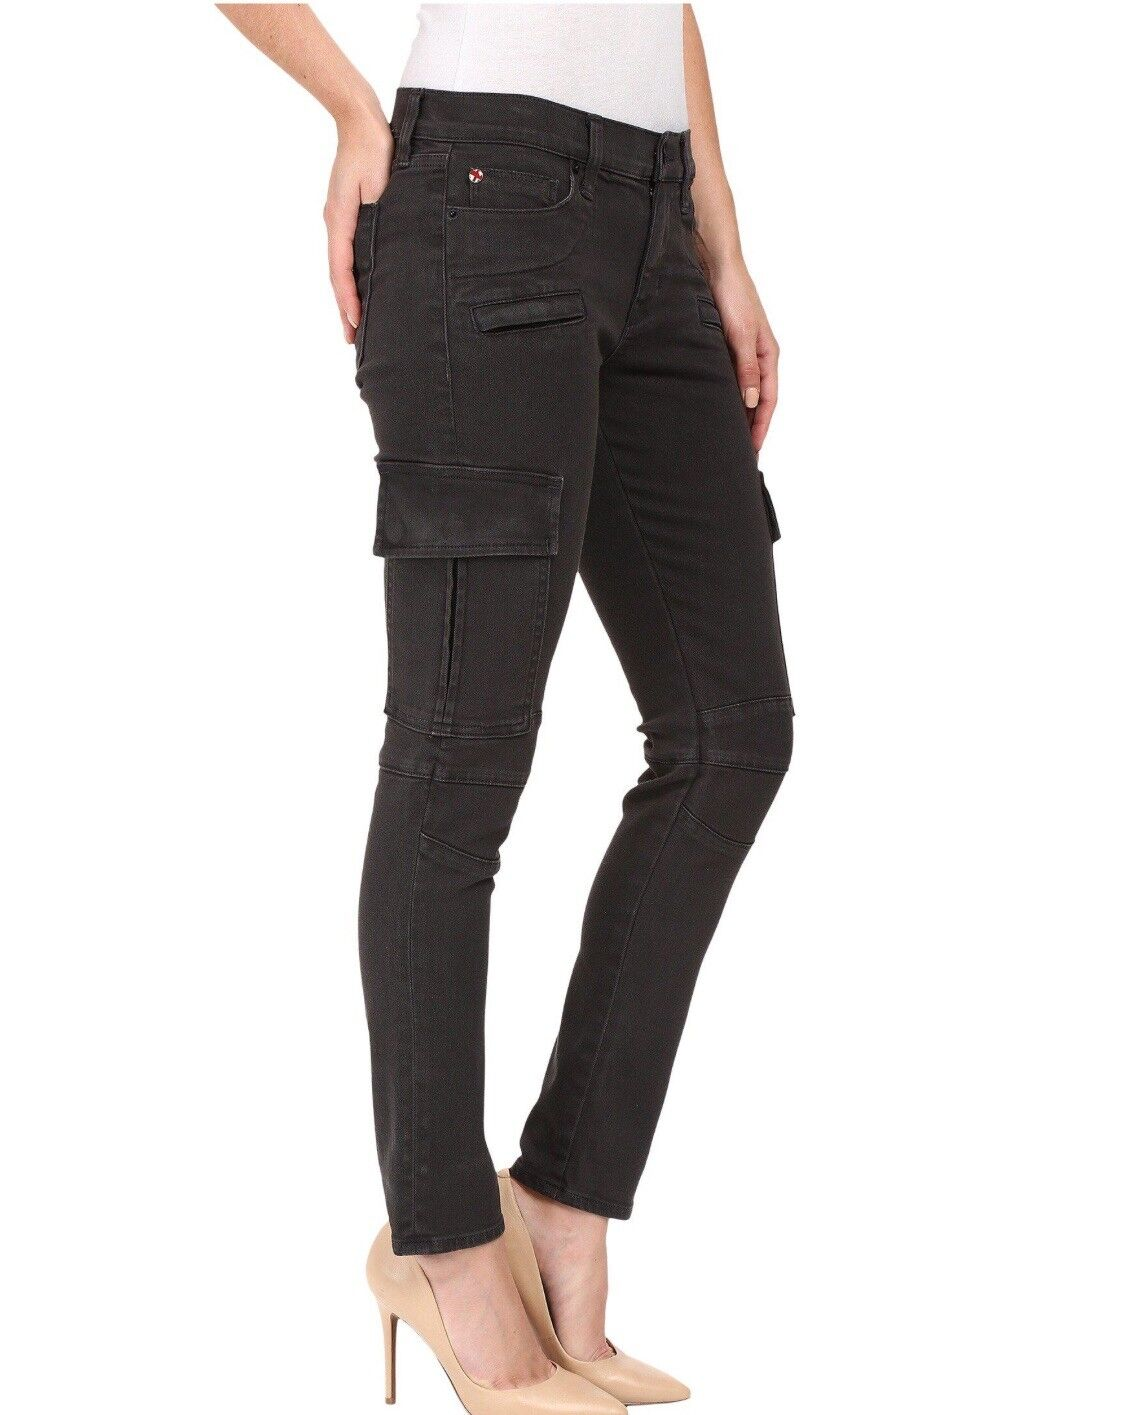 "NWT Hudson Colby Ankle Moto Skinny Cargo Jeans Womens 24 Inseam 26"" Dark Grey"